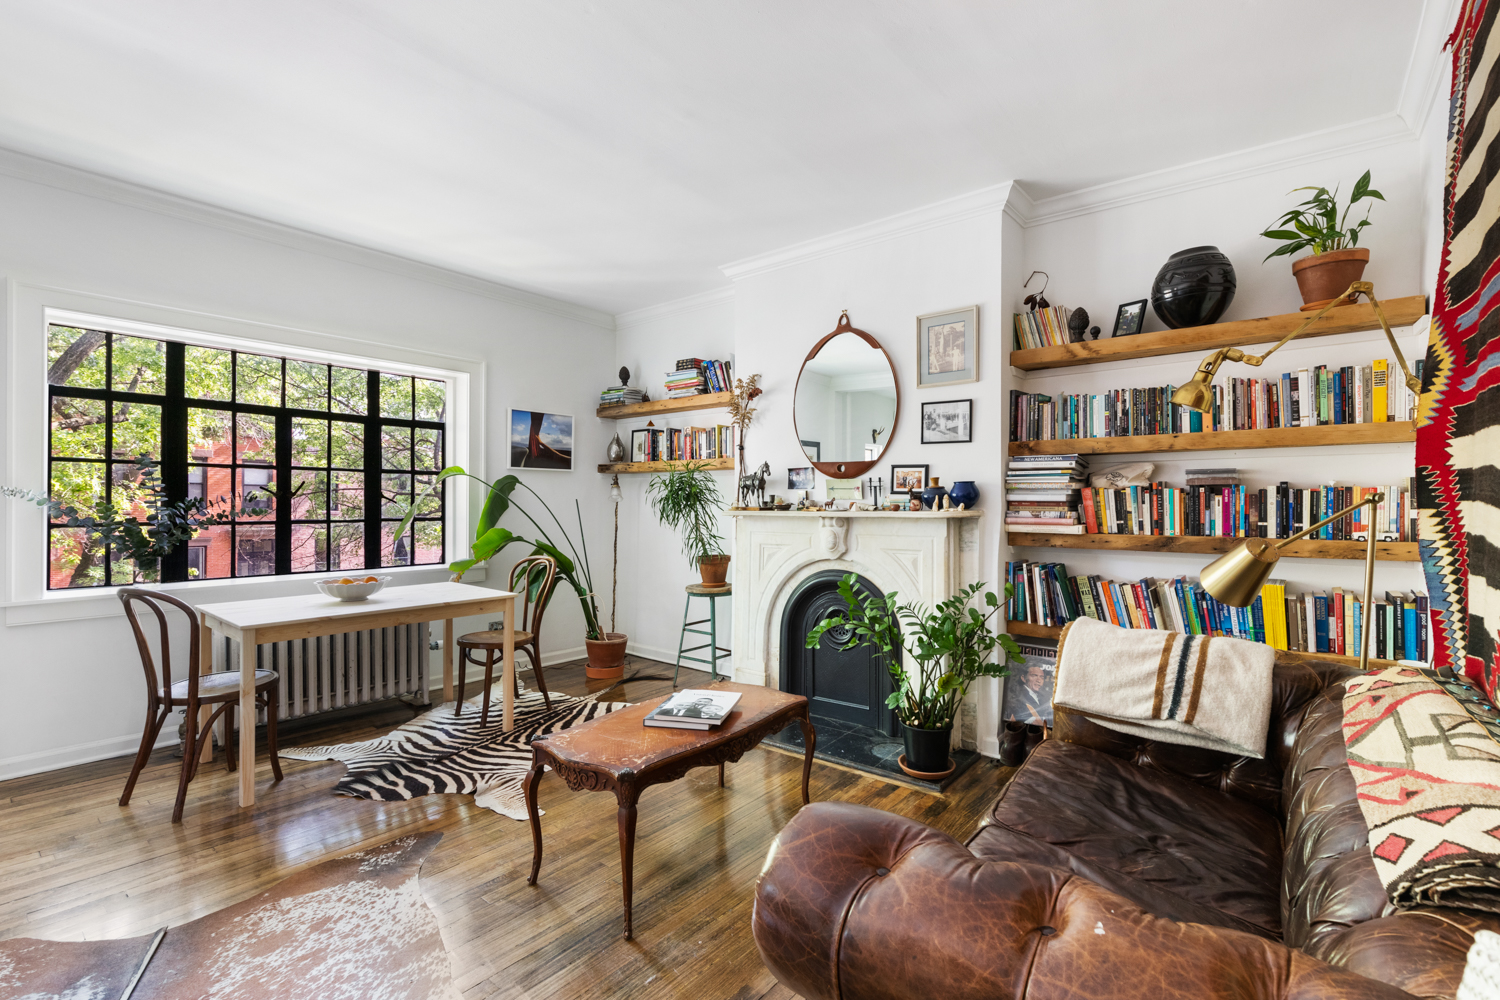 2020 Fort Greene Halloween $999K Fort Greene co op is super stylish with room to spare | 6sqft